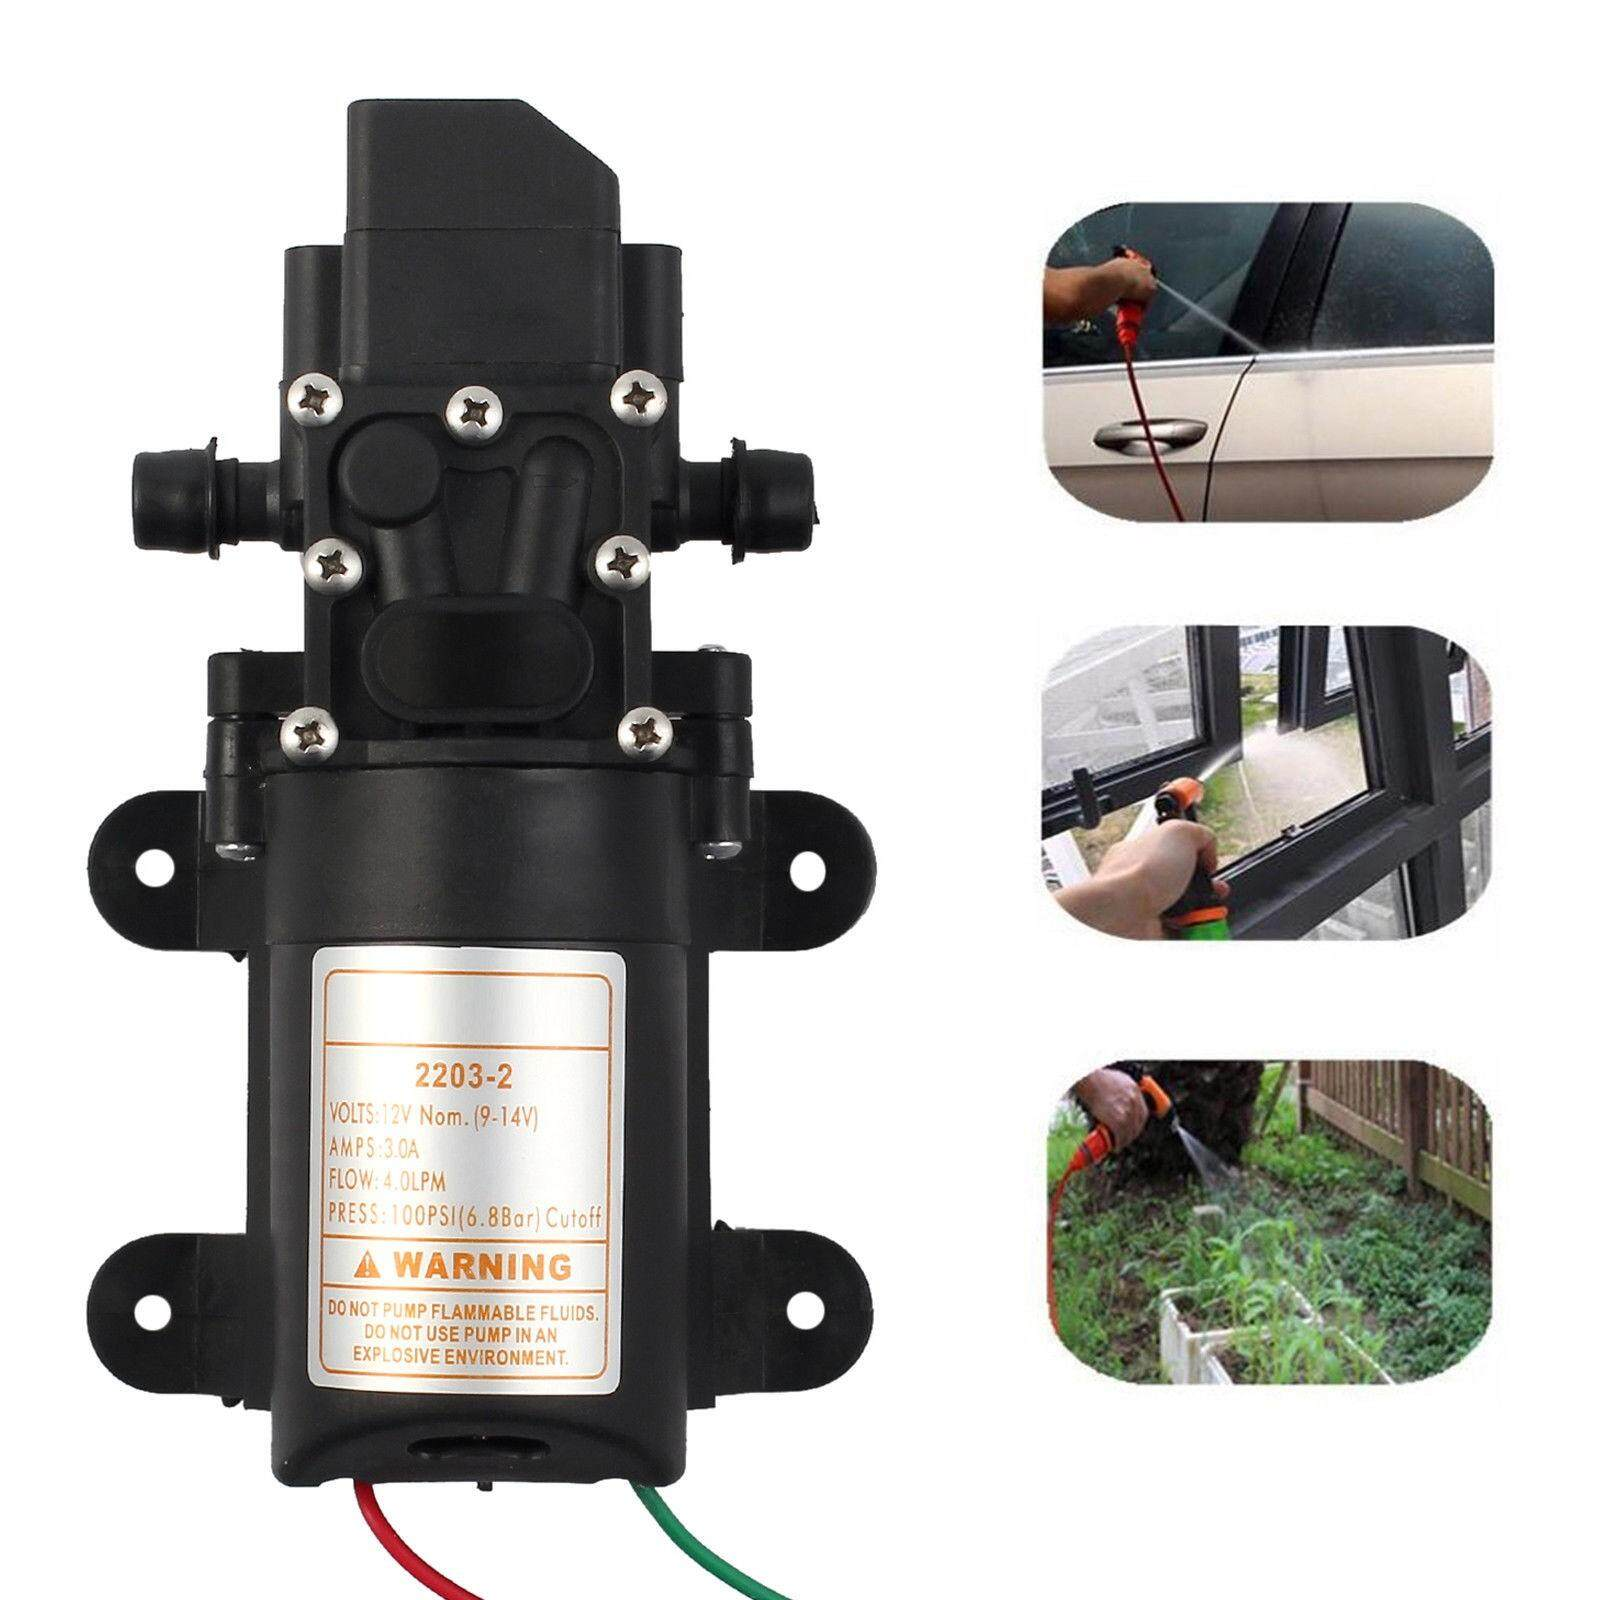 12V 70W Water Pump 130PSI 6L/Min Self Priming Diaphragm Water Pump High Pressure Automatic